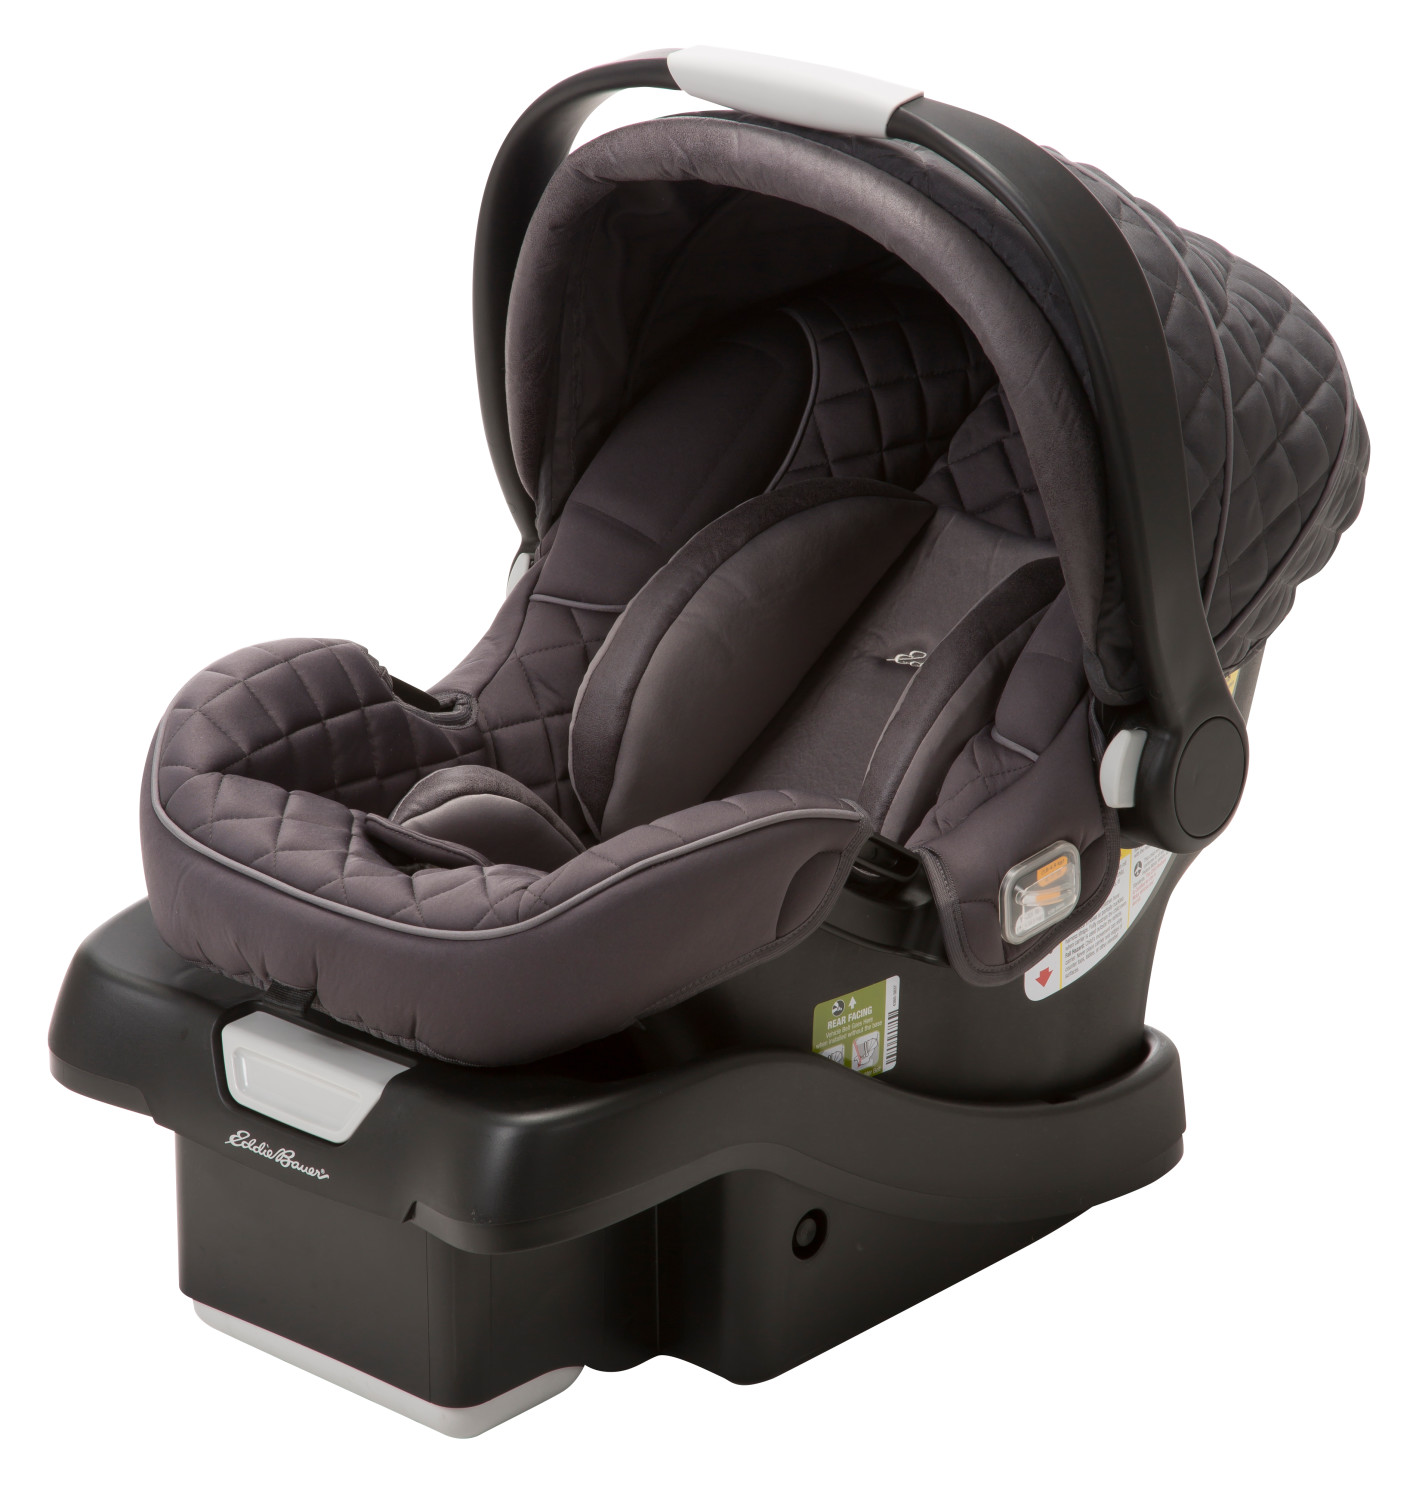 Base For Car Seat Eddie Bauer